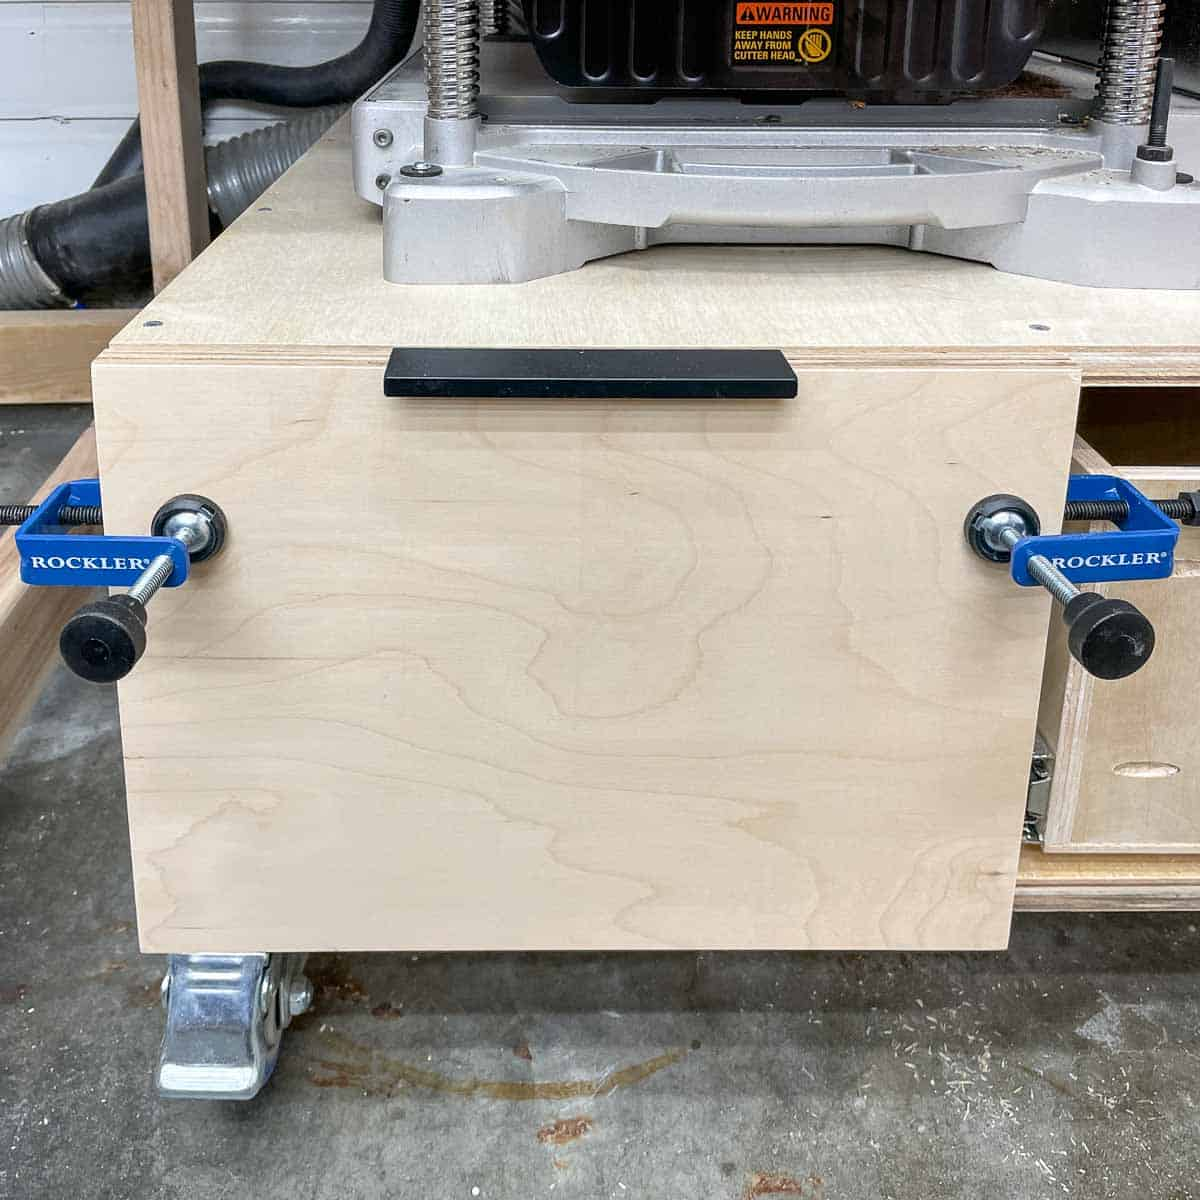 installing drawer front on drawer in planer stand with specialty clamps